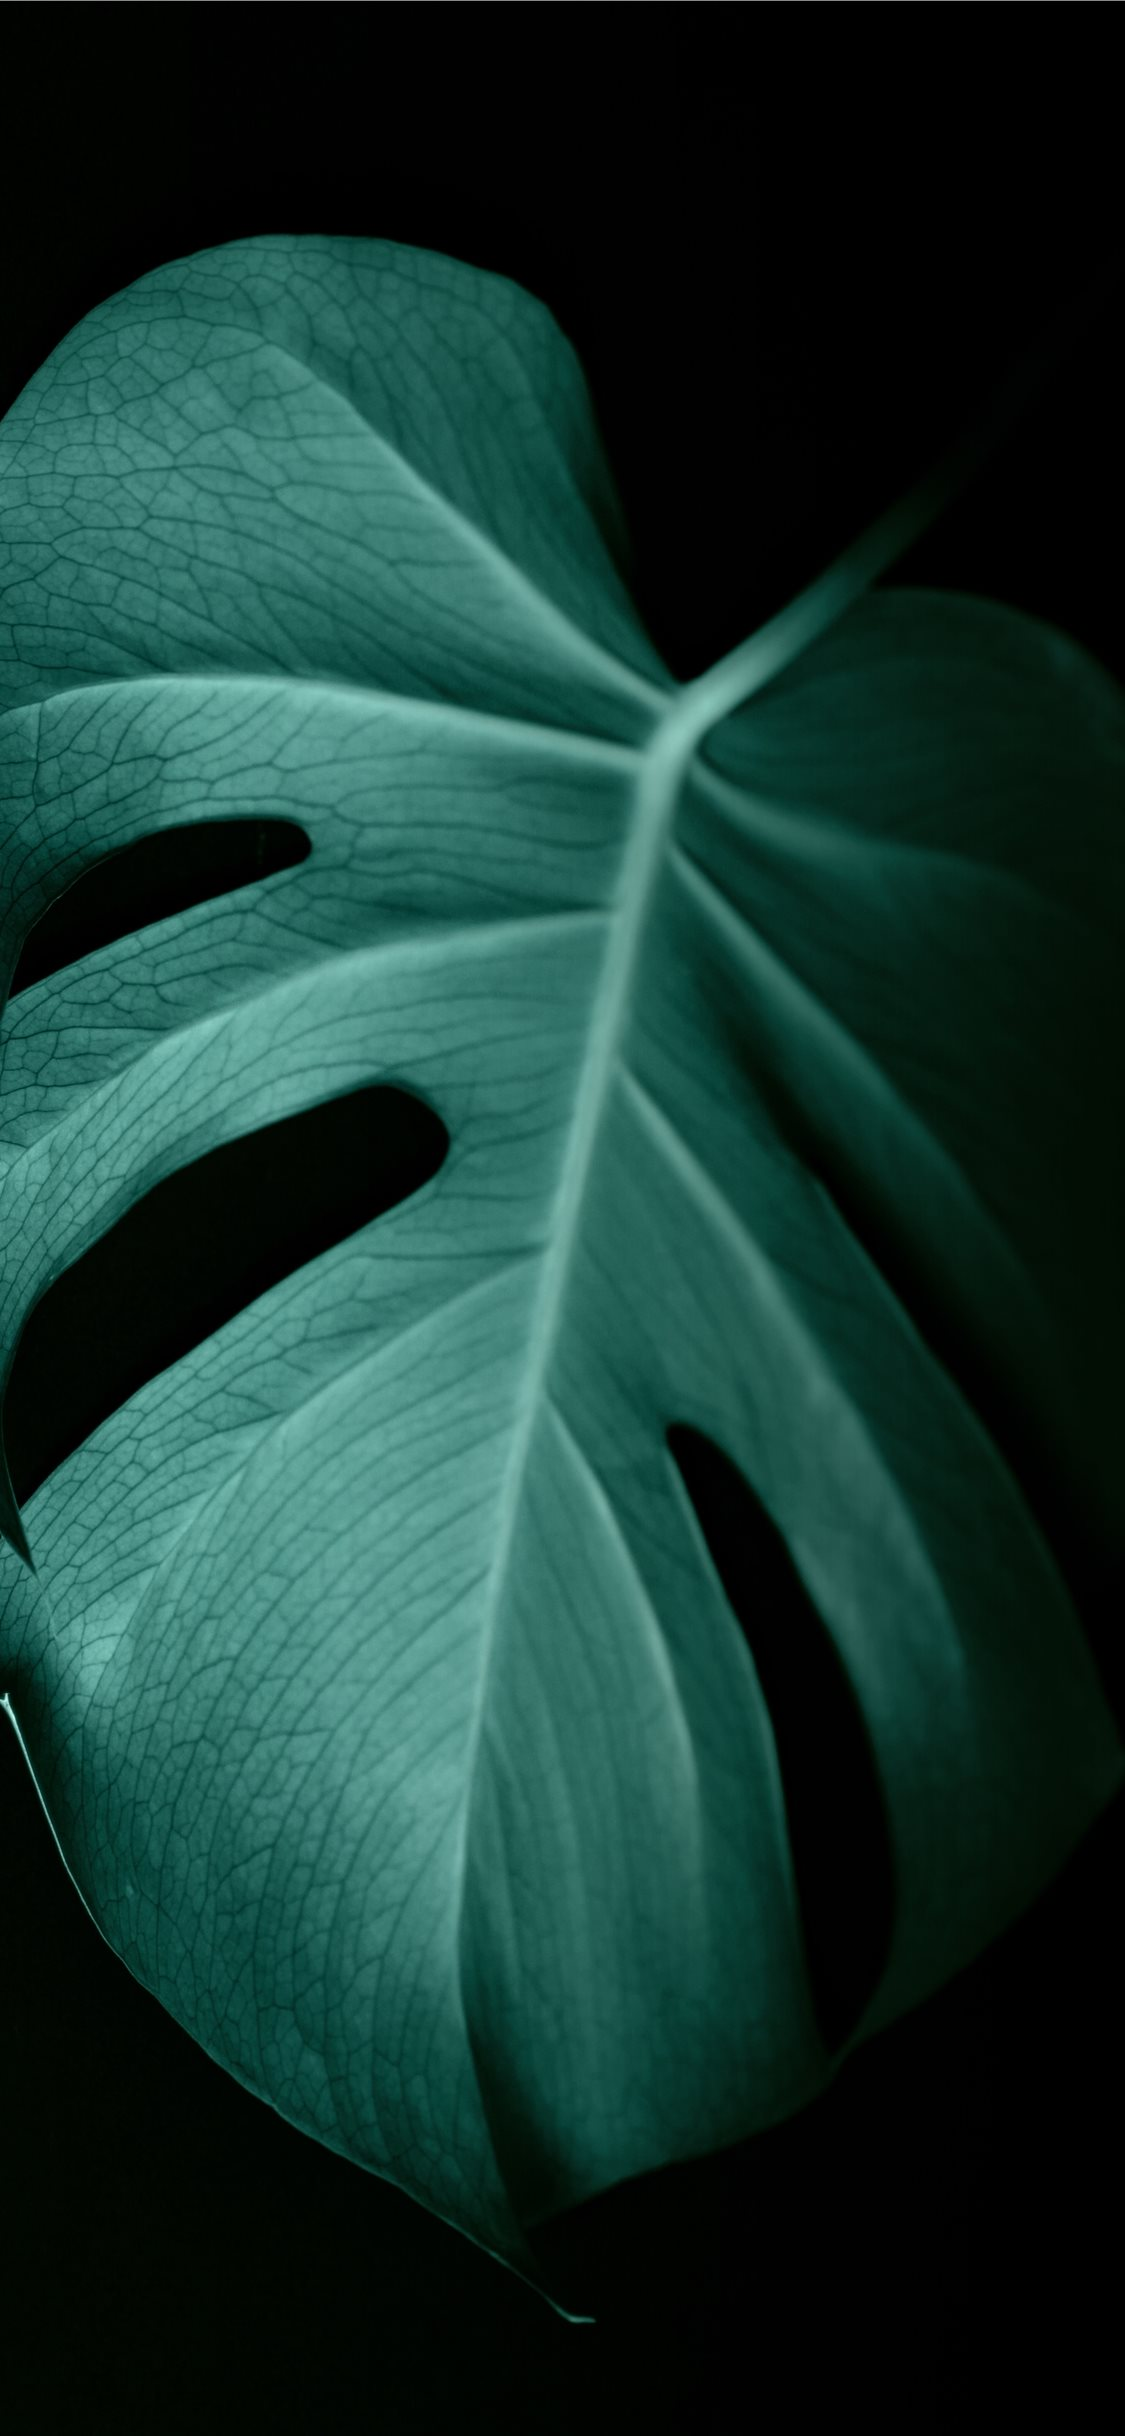 Green Leaf In Dark Surface Iphone X Wallpapers Free Download